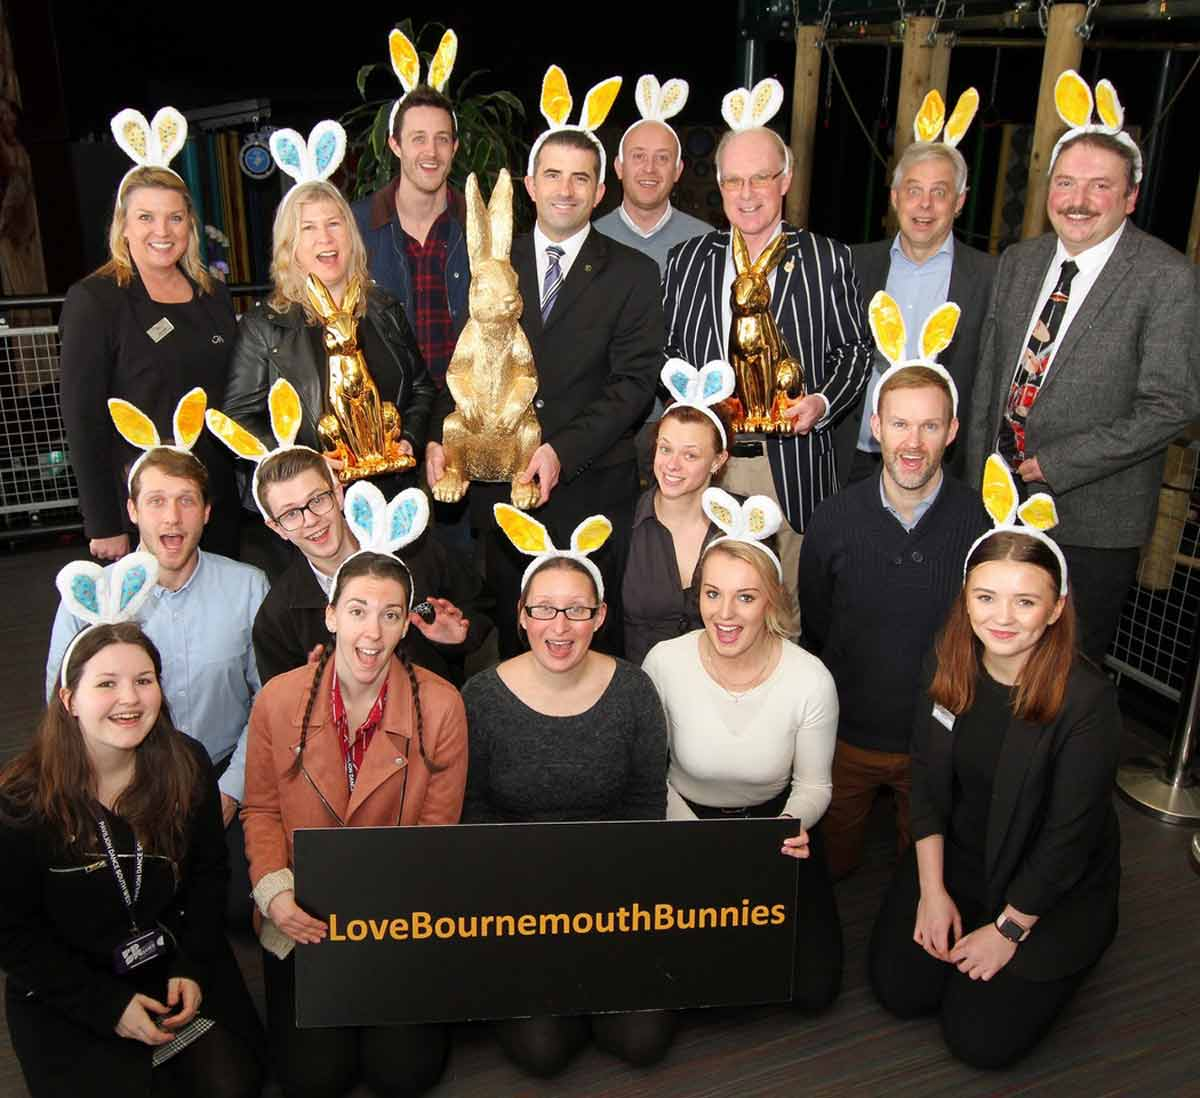 Members of the Bournemouth business community join Coastal BID to launch Love Bournemouth Bunnies © Hattie Miles